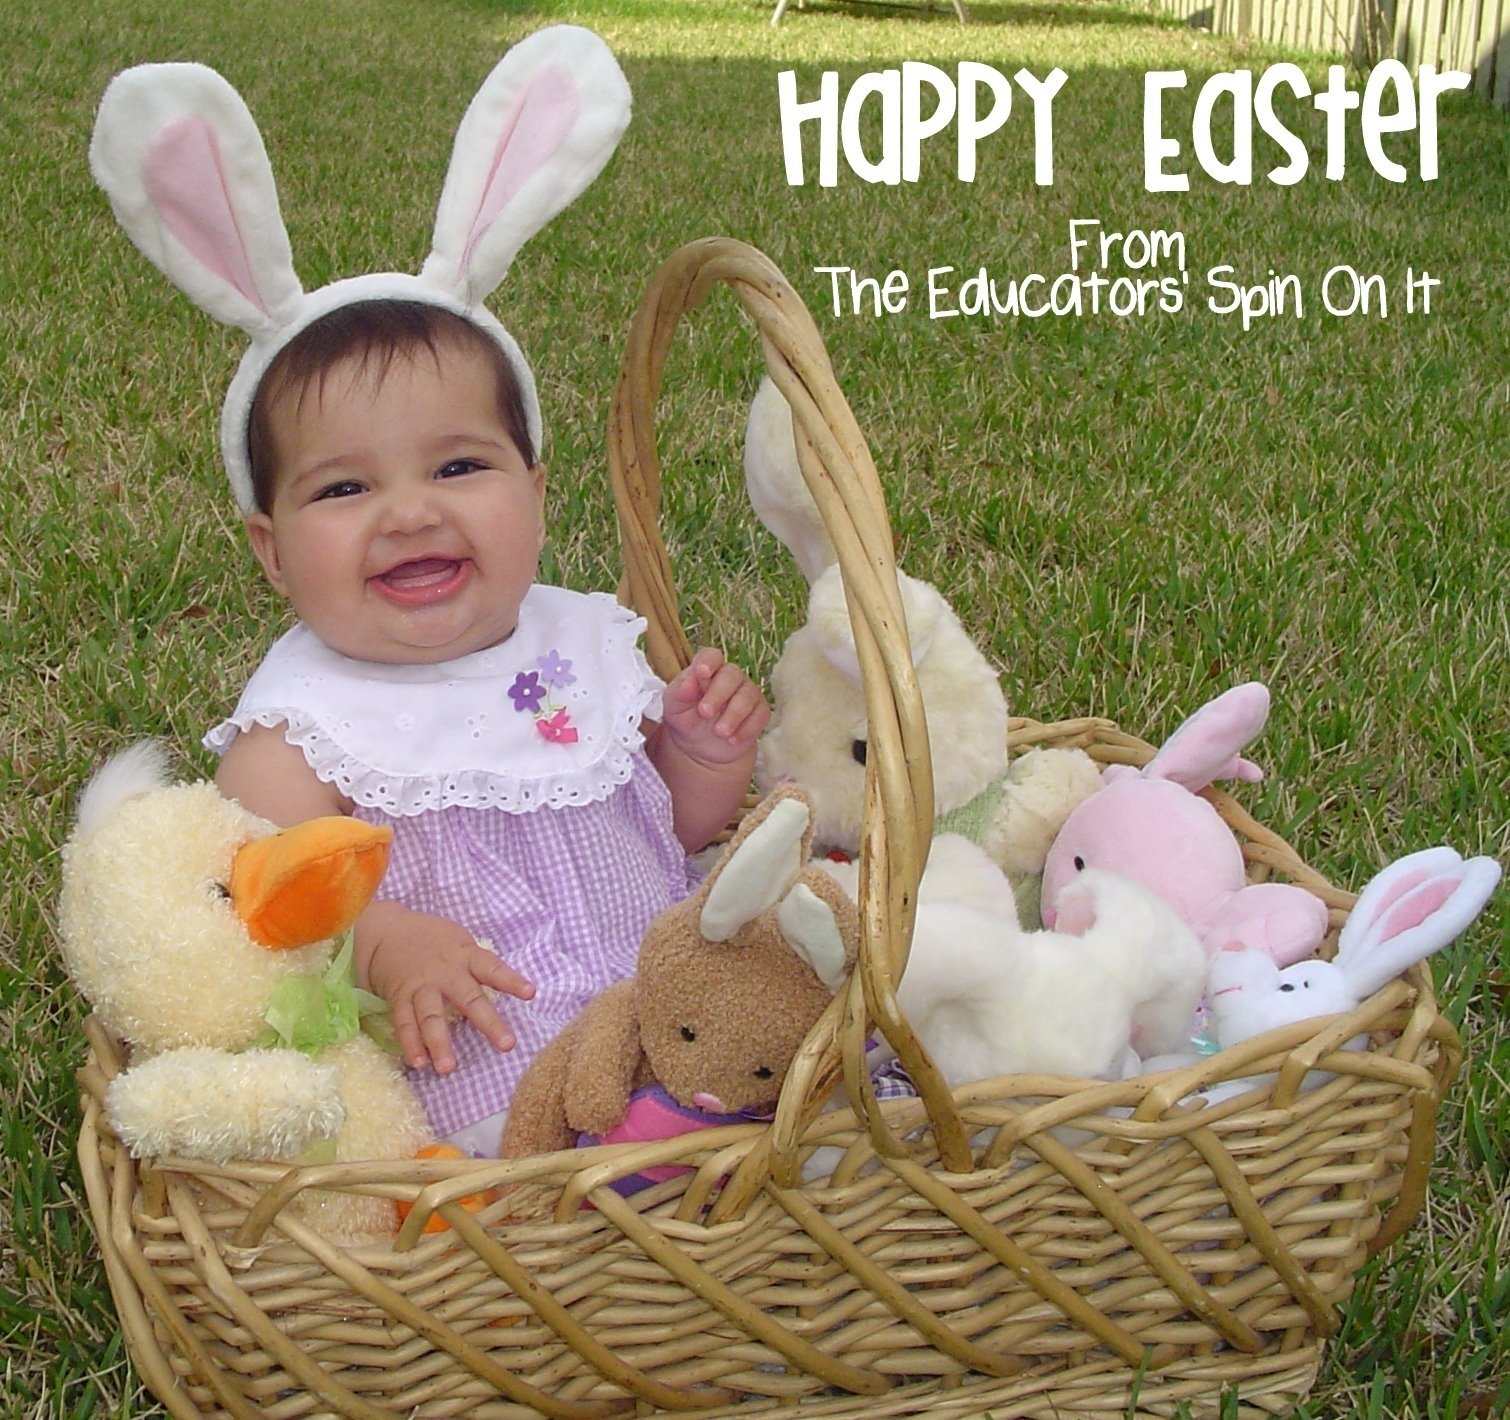 10 Elegant Easter Picture Ideas For Toddlers ideas for easter baskets for babies